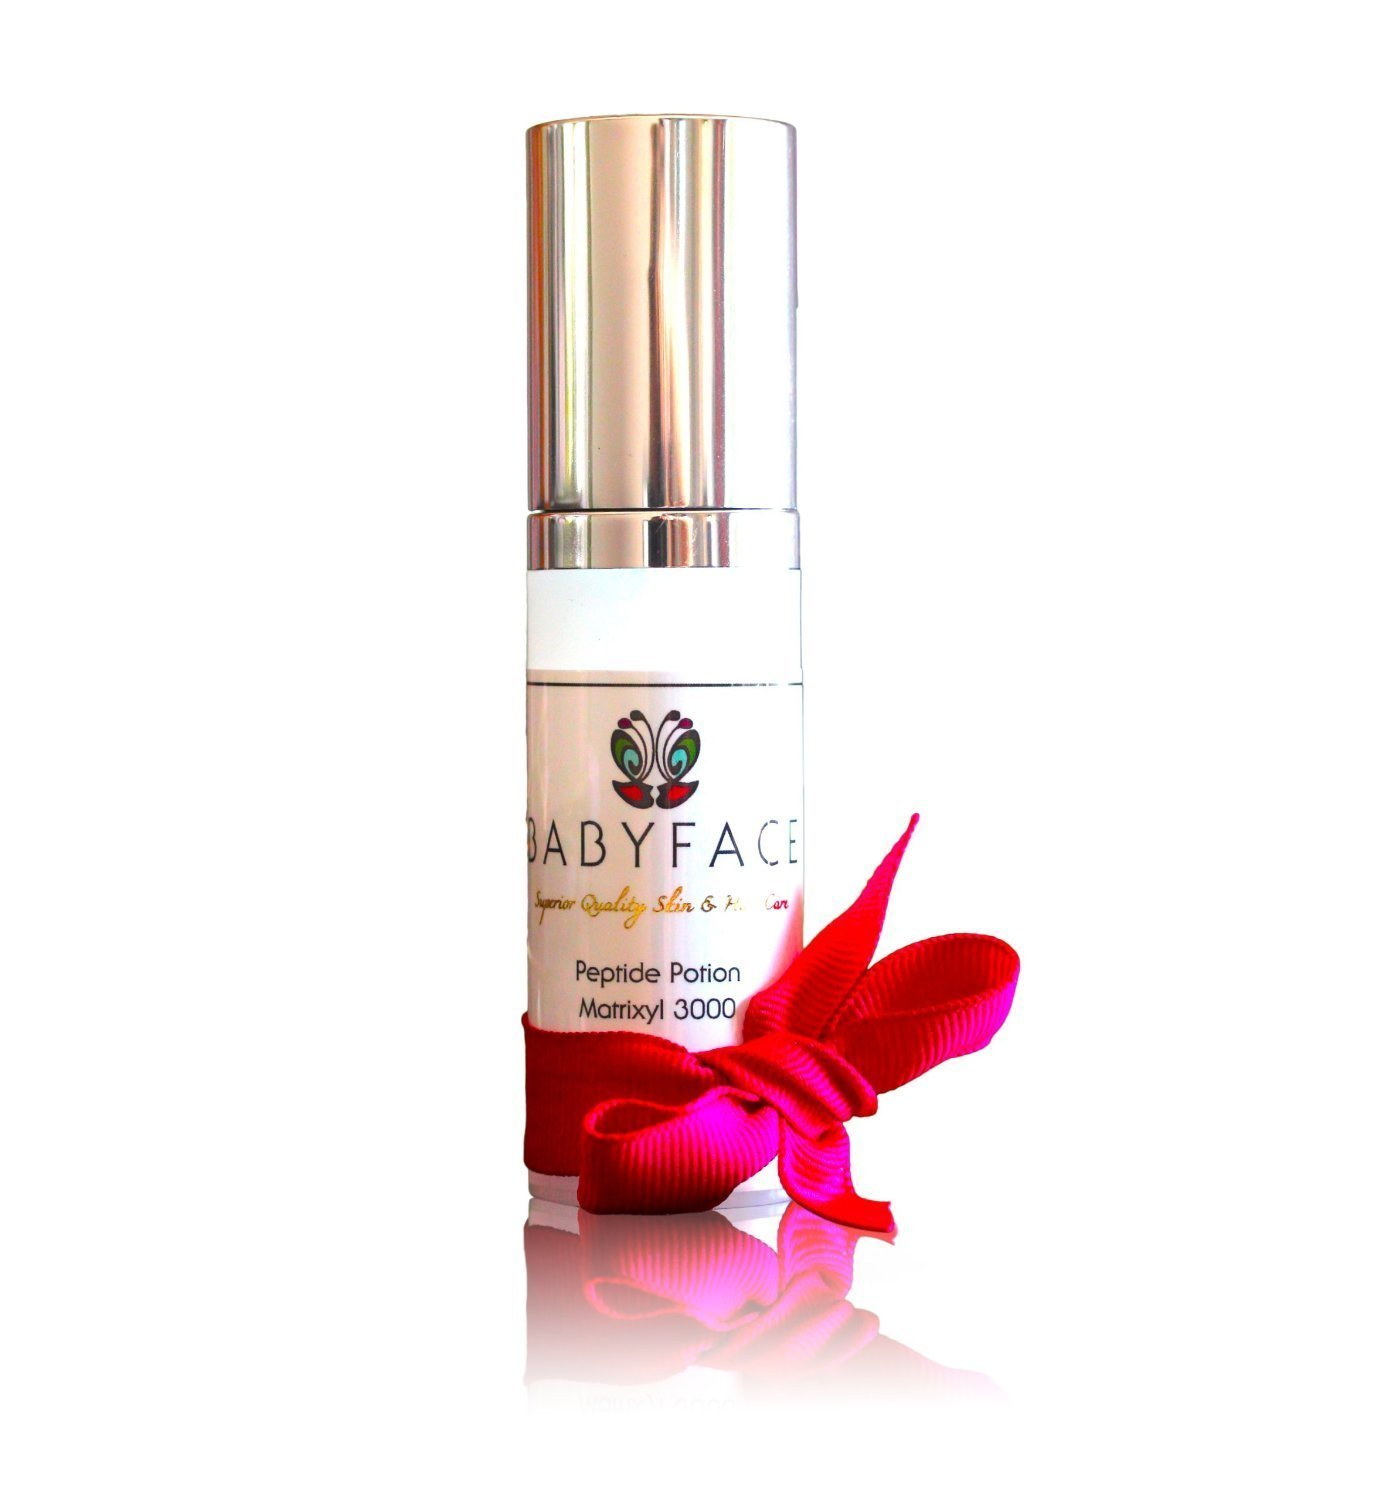 Babyface Skin Tightening Peptide Potion Matrixyl 3000 Concentrated Firming Serum - Anti-Aging, Wrinkle Filler, Instant Tightening Effect 18ml